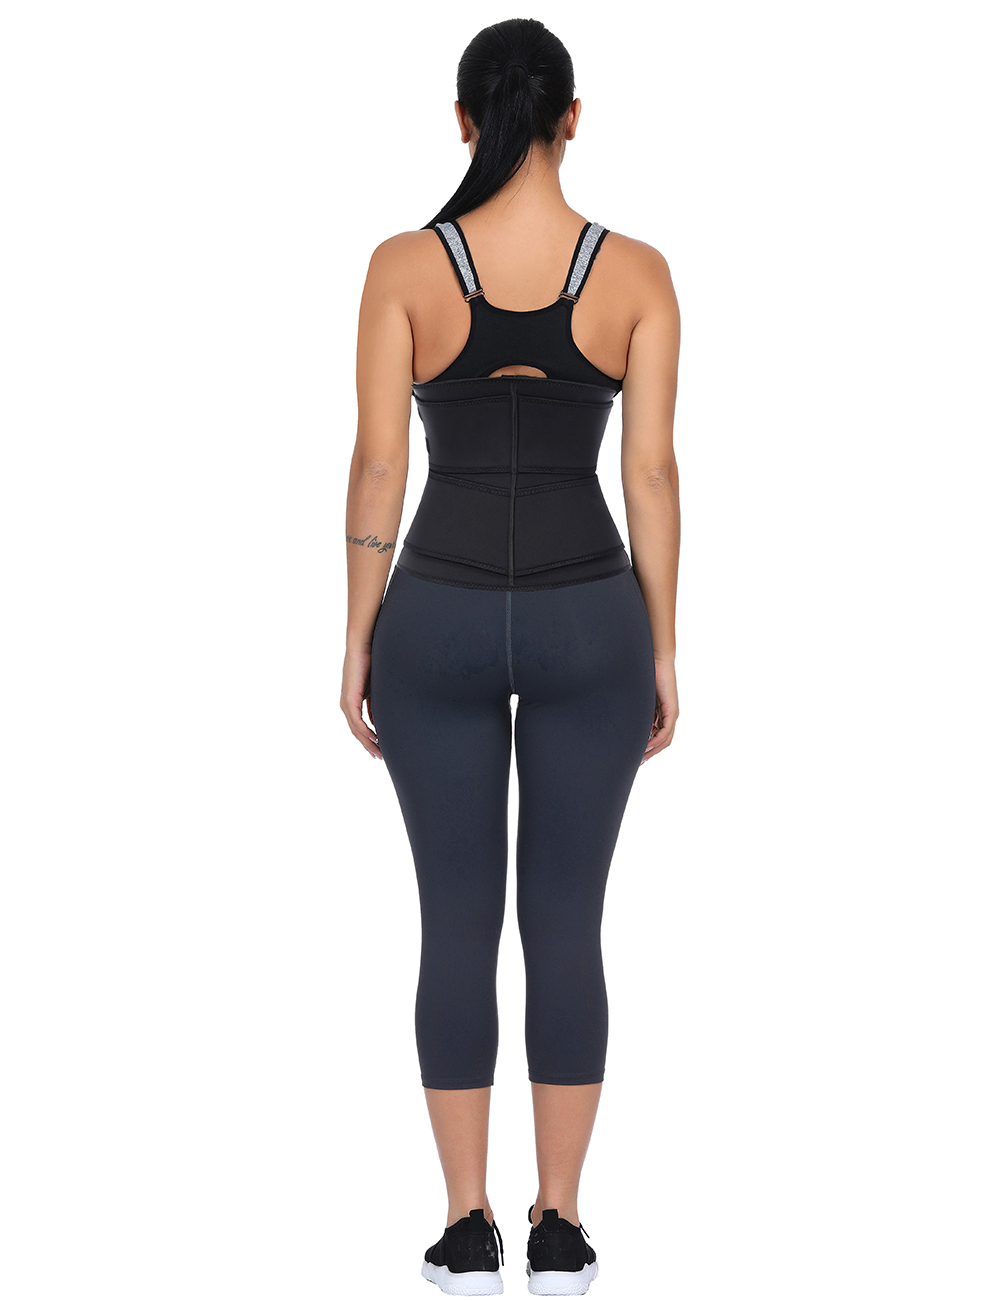 //cdn.affectcloud.com/hexinfashion/upload/imgs/Shaper/Waist_Trainer/B195063-BK1/B195063-BK1-201911065dc250701e8ed.jpg